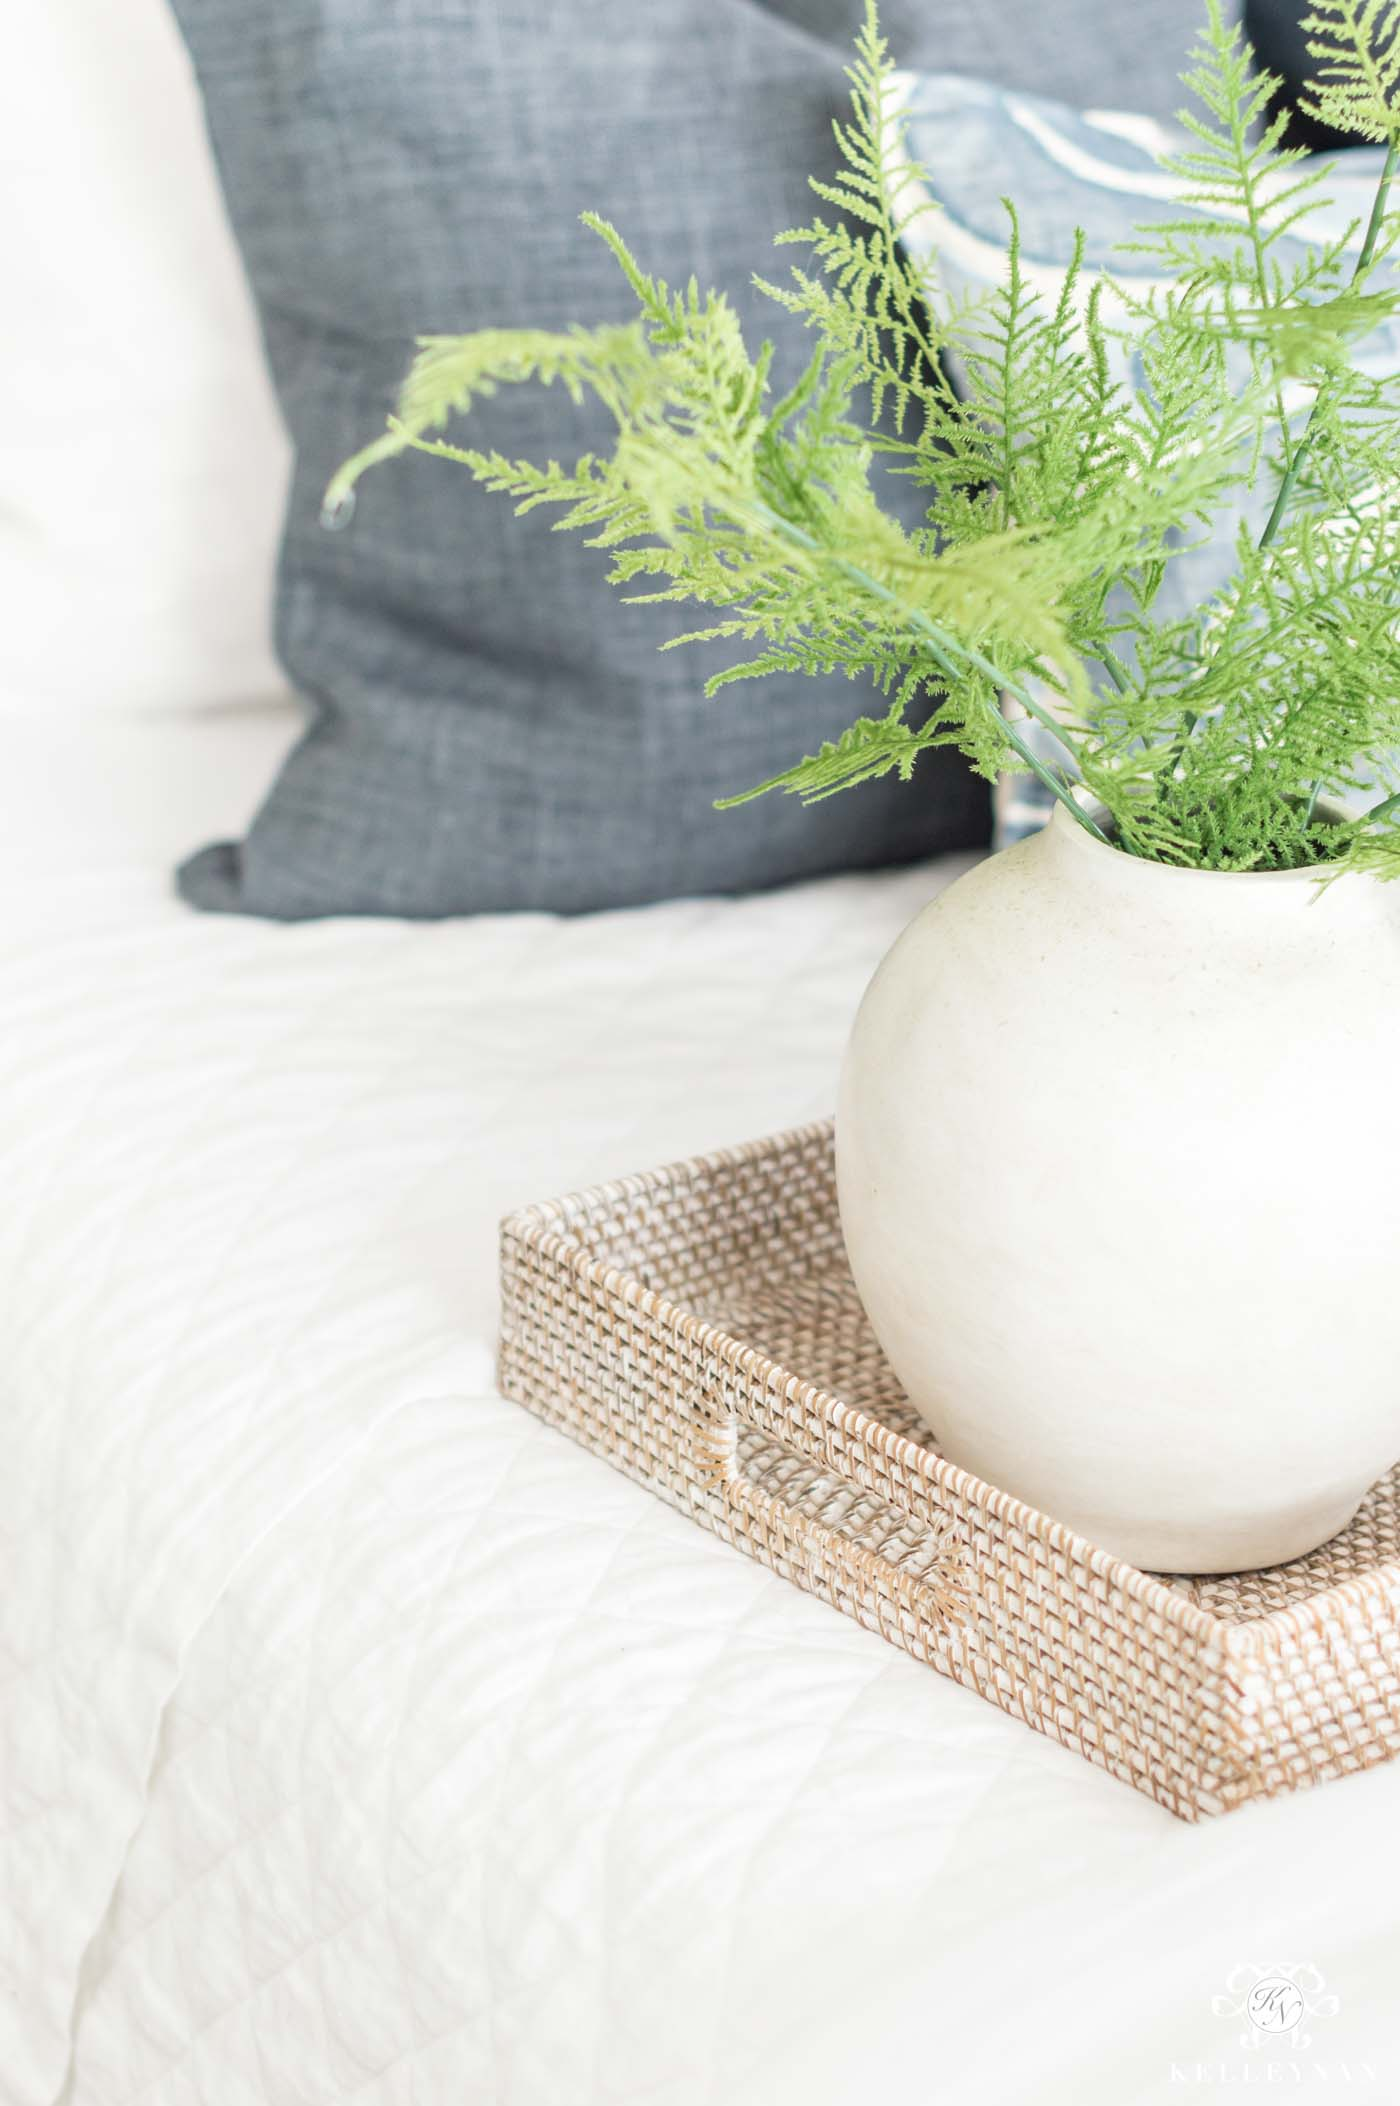 white vase with greenery and asparagus ferns